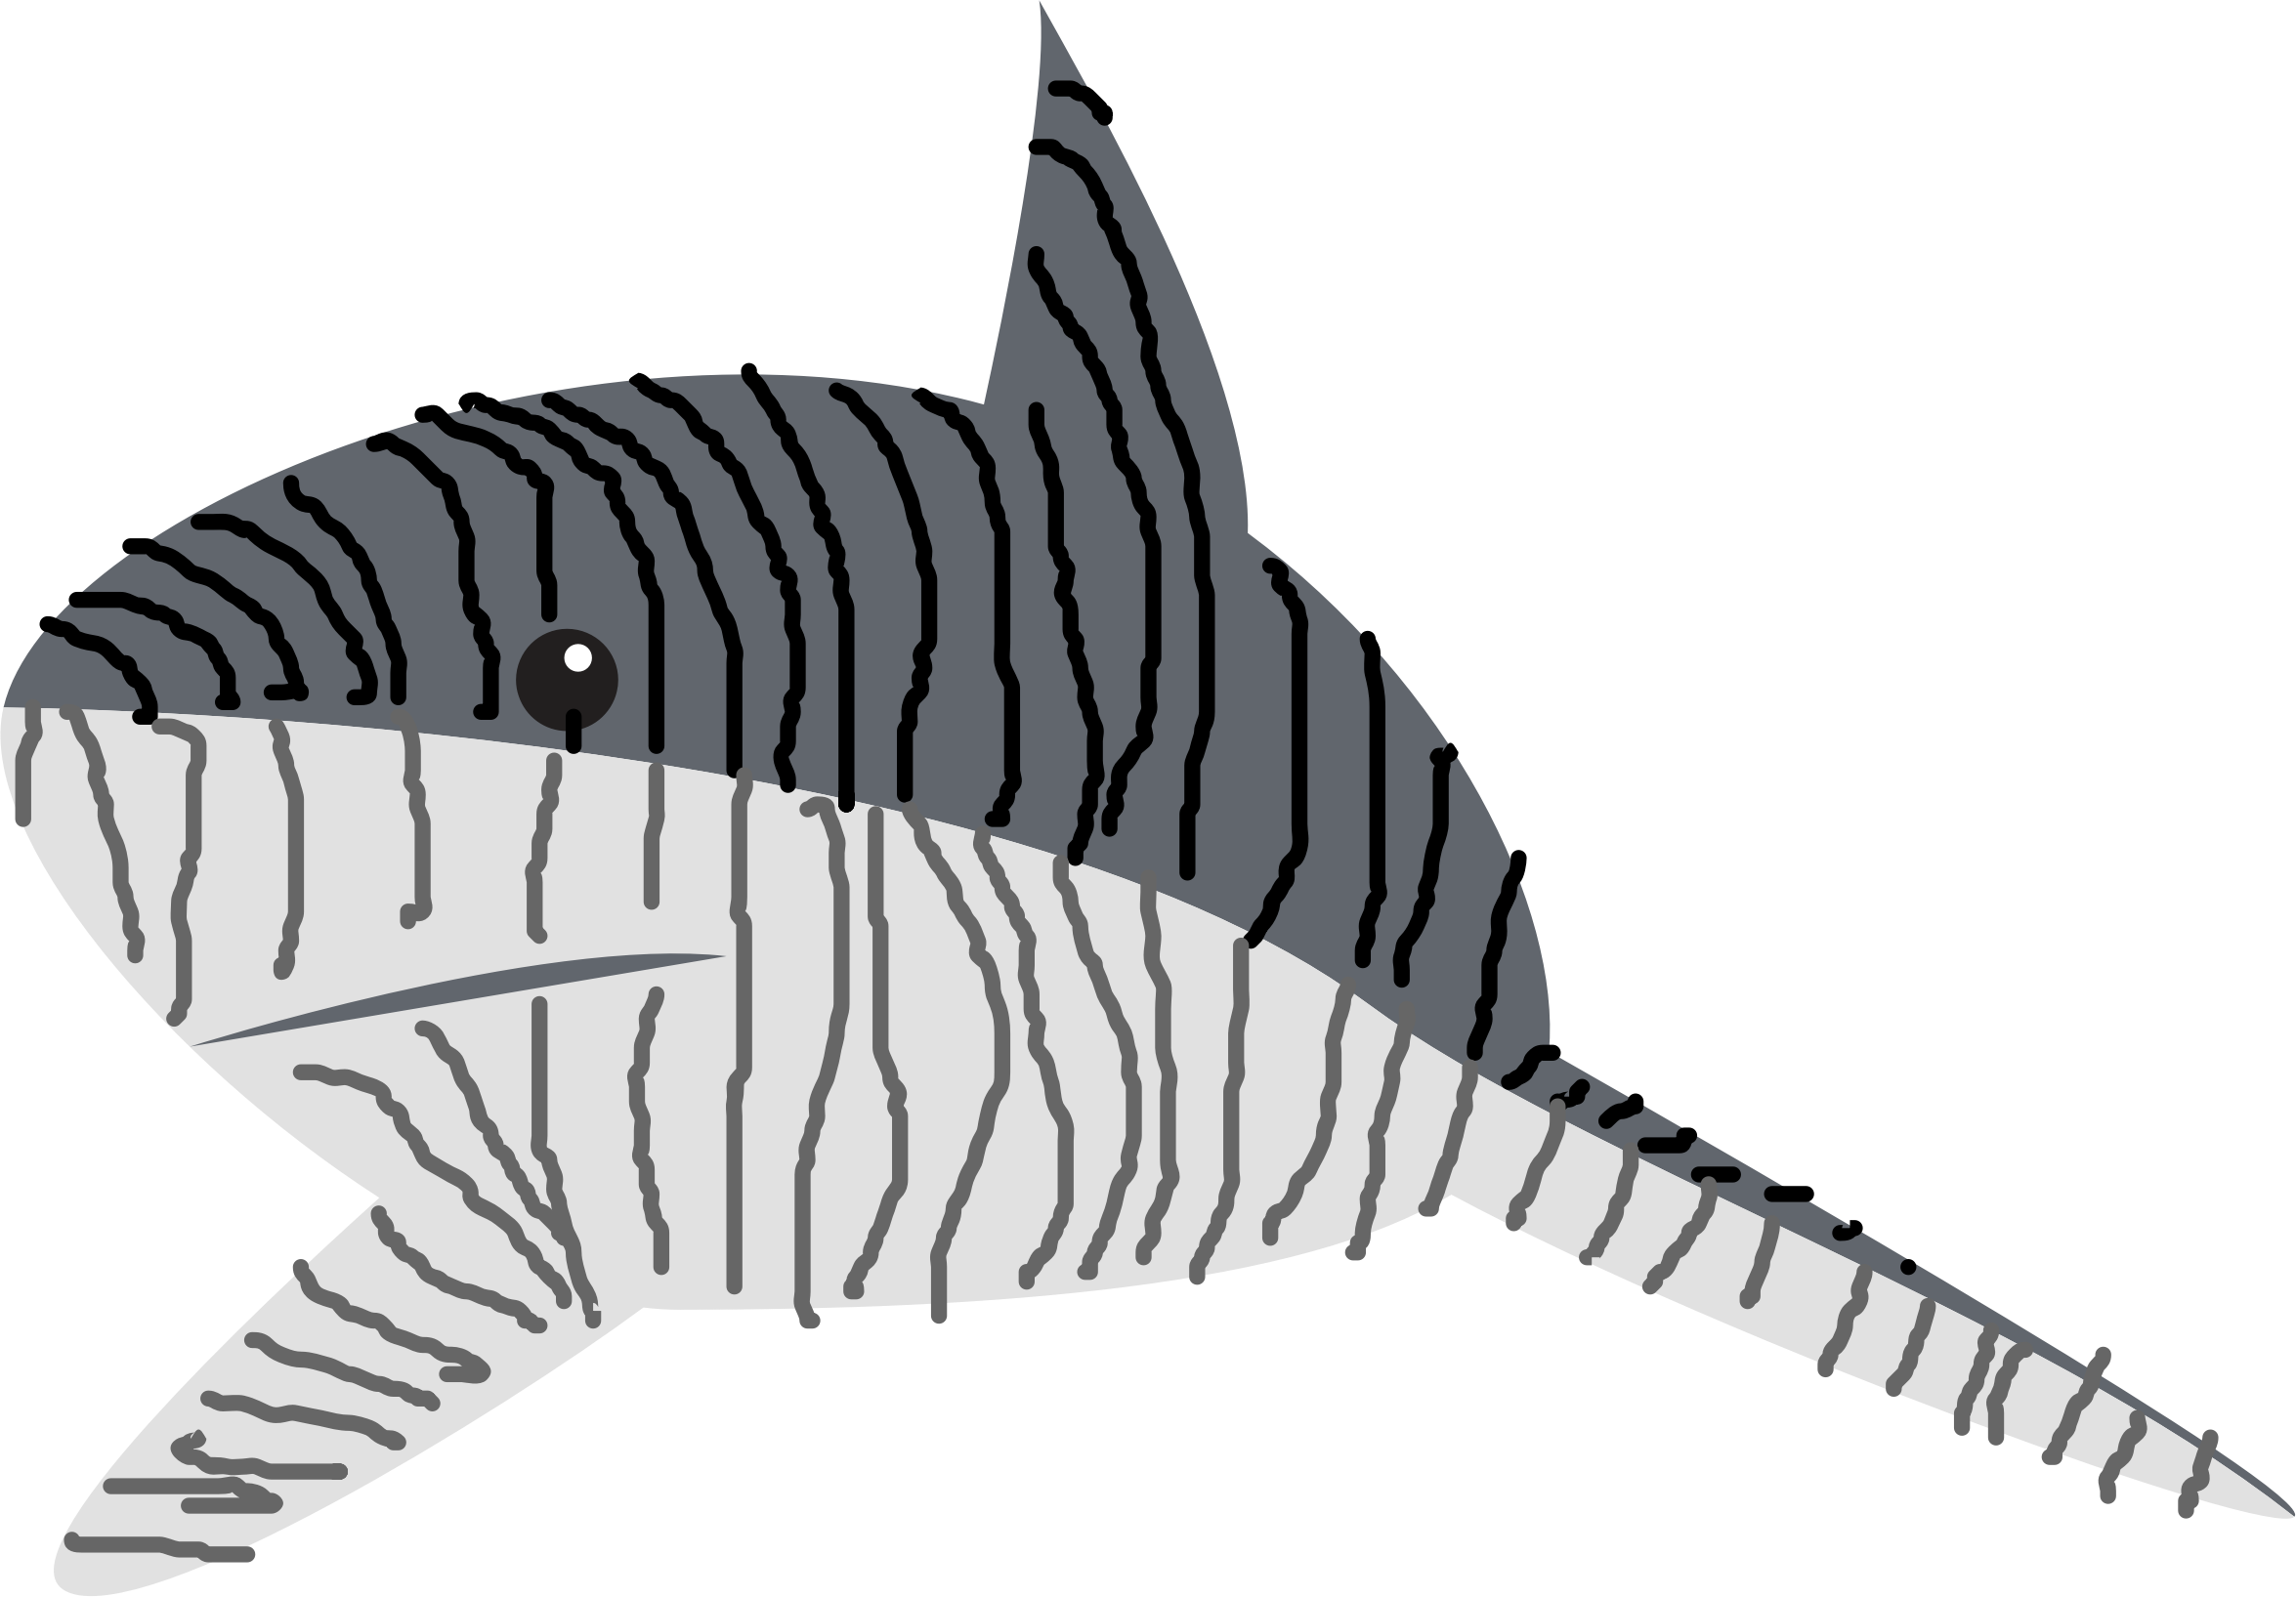 Tiger Shark (Beast Of The Seas) by 116557